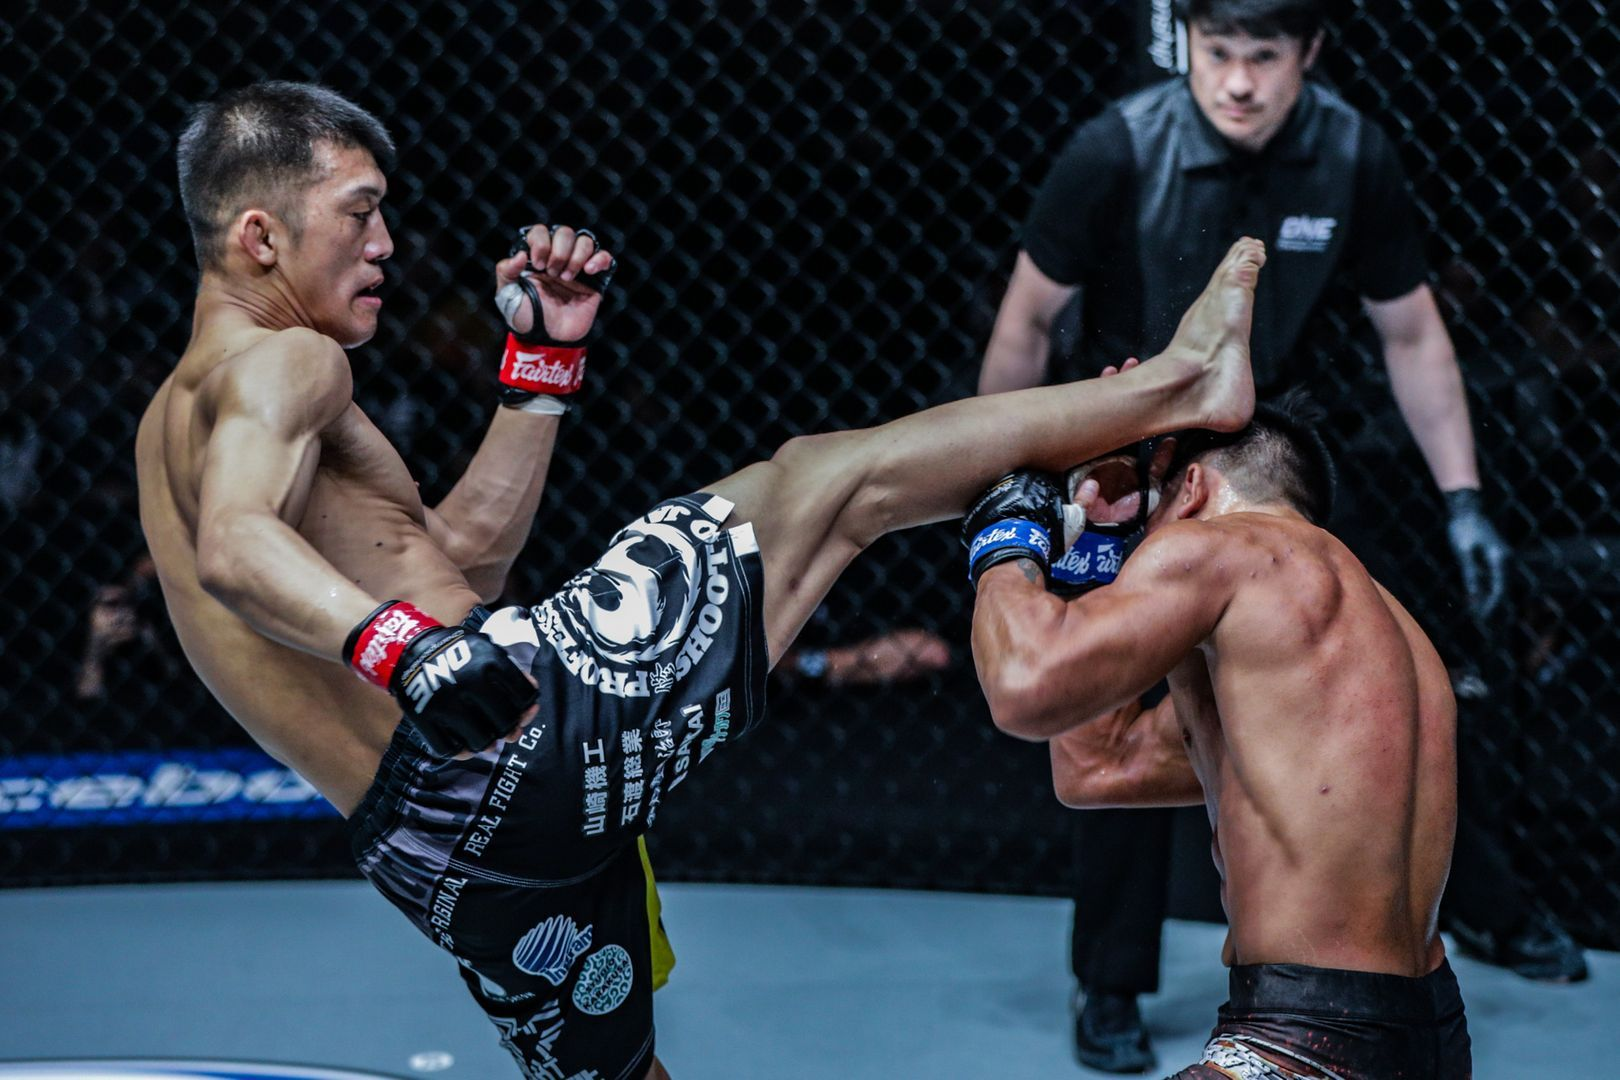 Shoko Sato kicks Mark Fairtex Abelardo at ONE: WARRIORS OF LIGHT